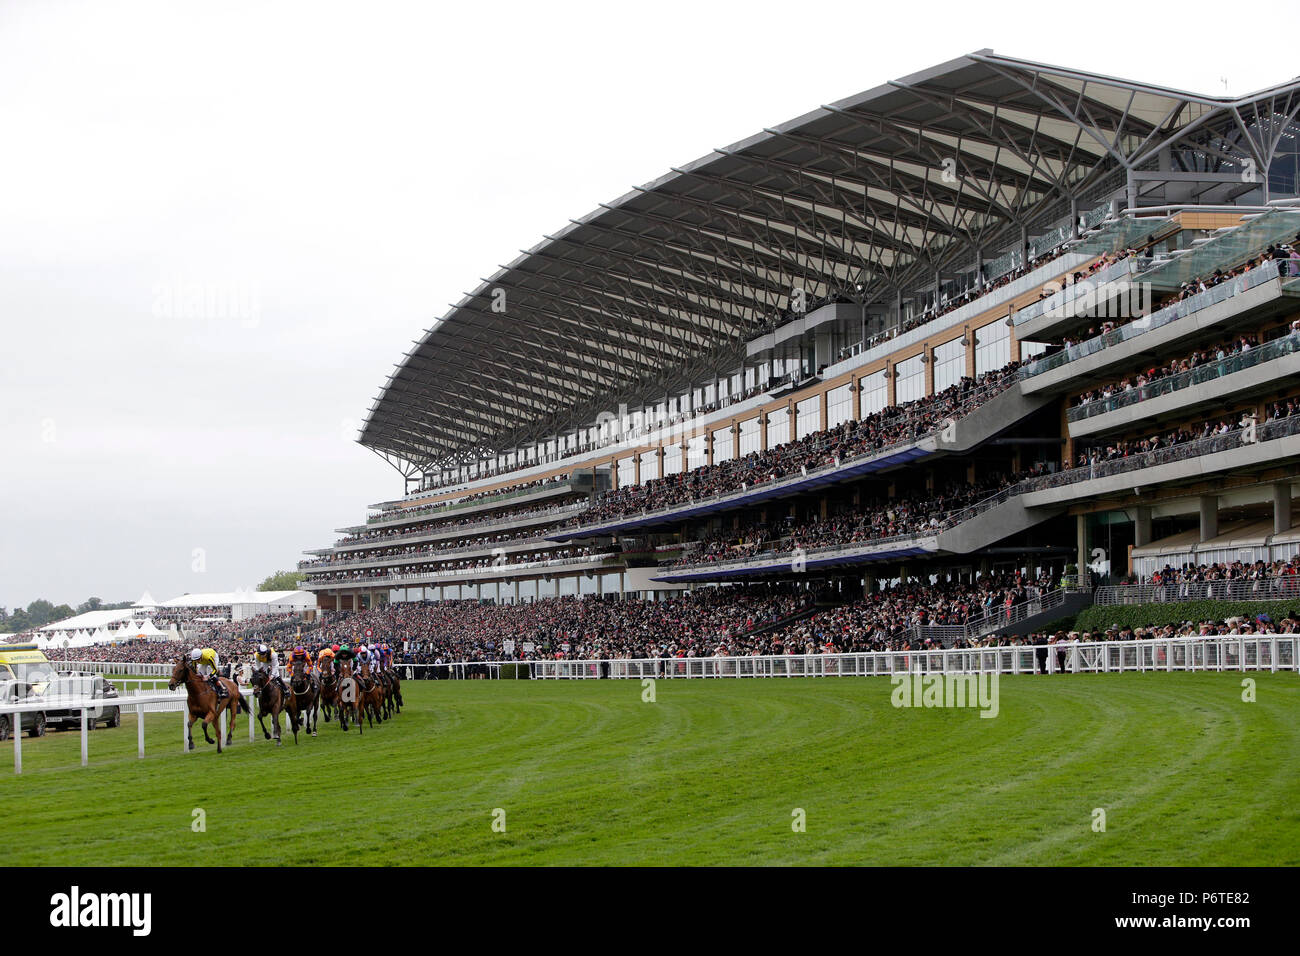 Royal Ascot, Horses and jockeys at the Ascot Gold Cup in front of the grandstand - Stock Image